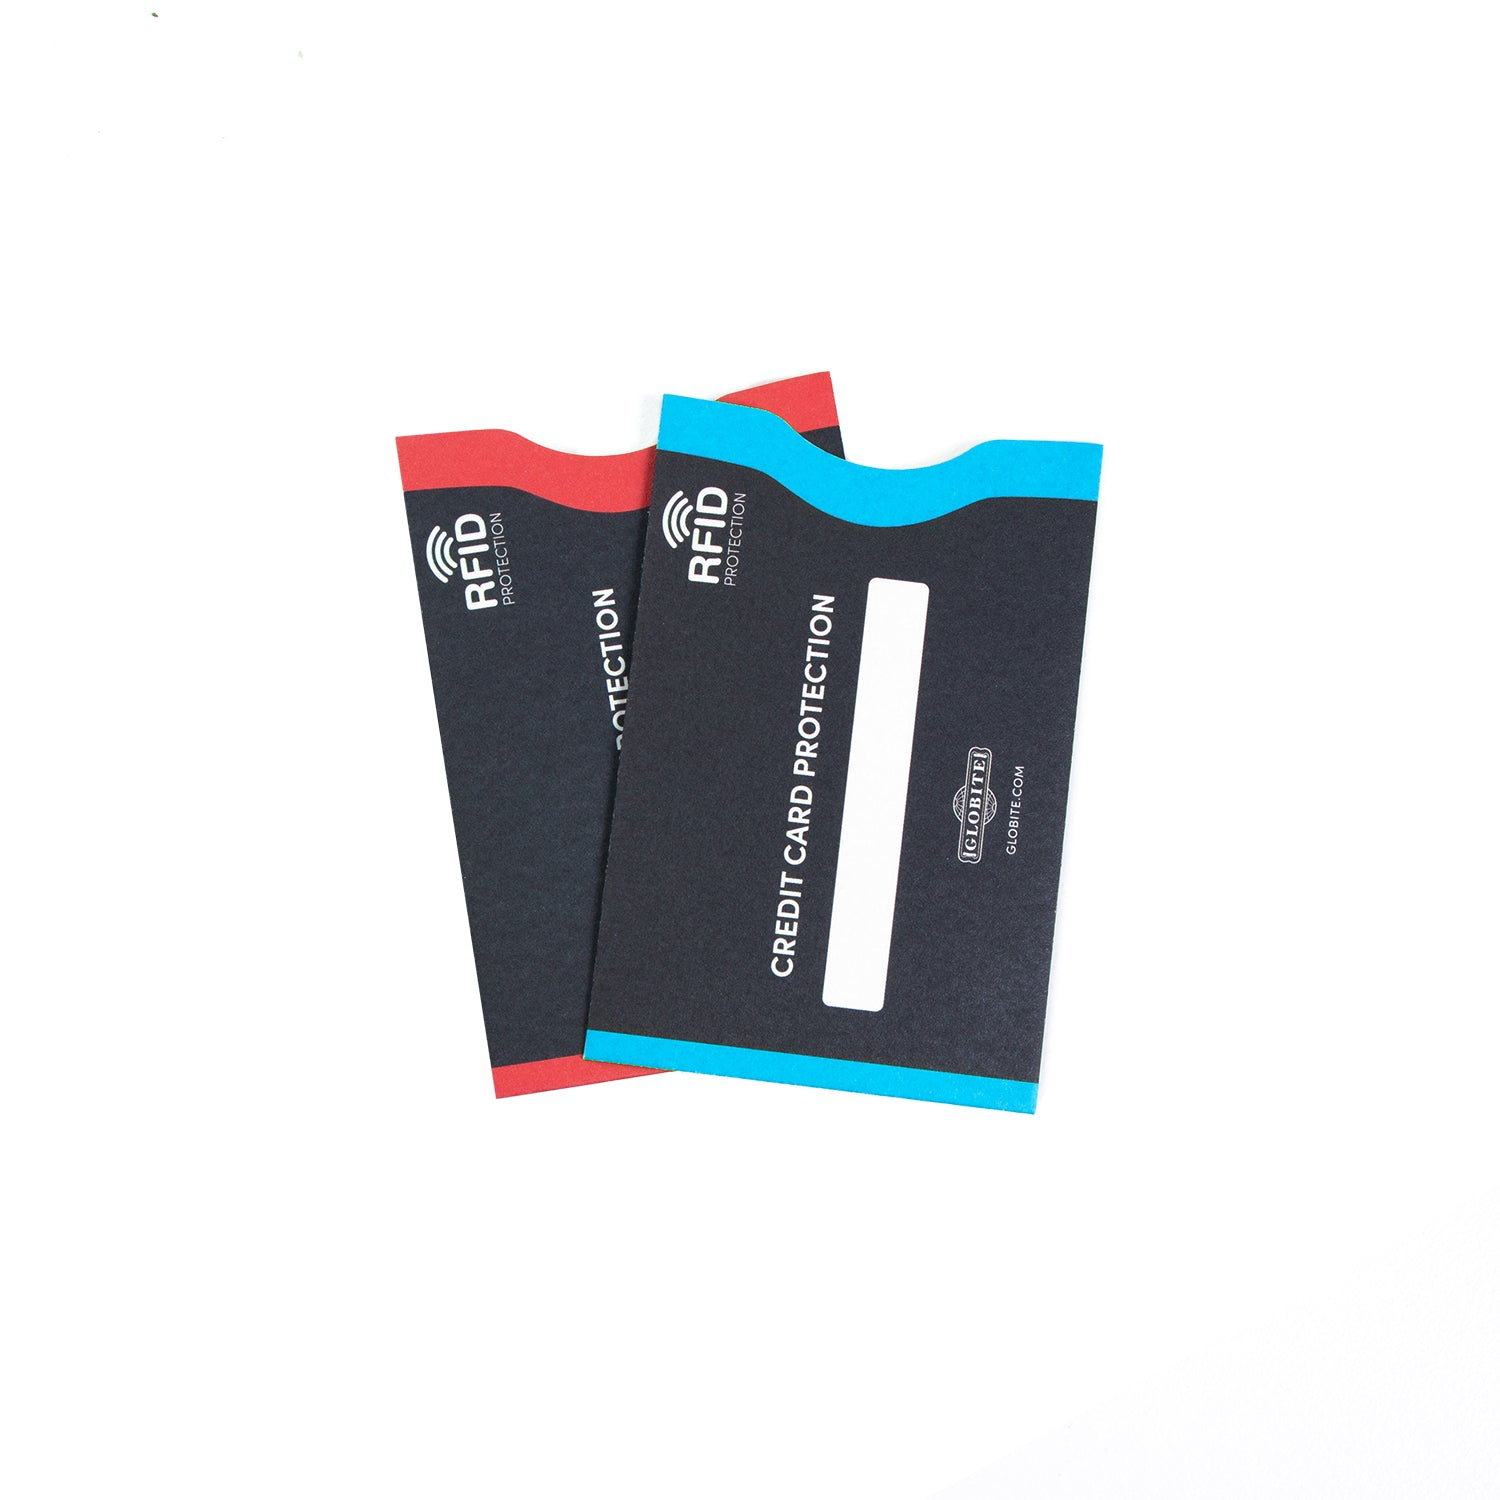 RFID Blocking Credit Card Sleeve 2 Pk - globite